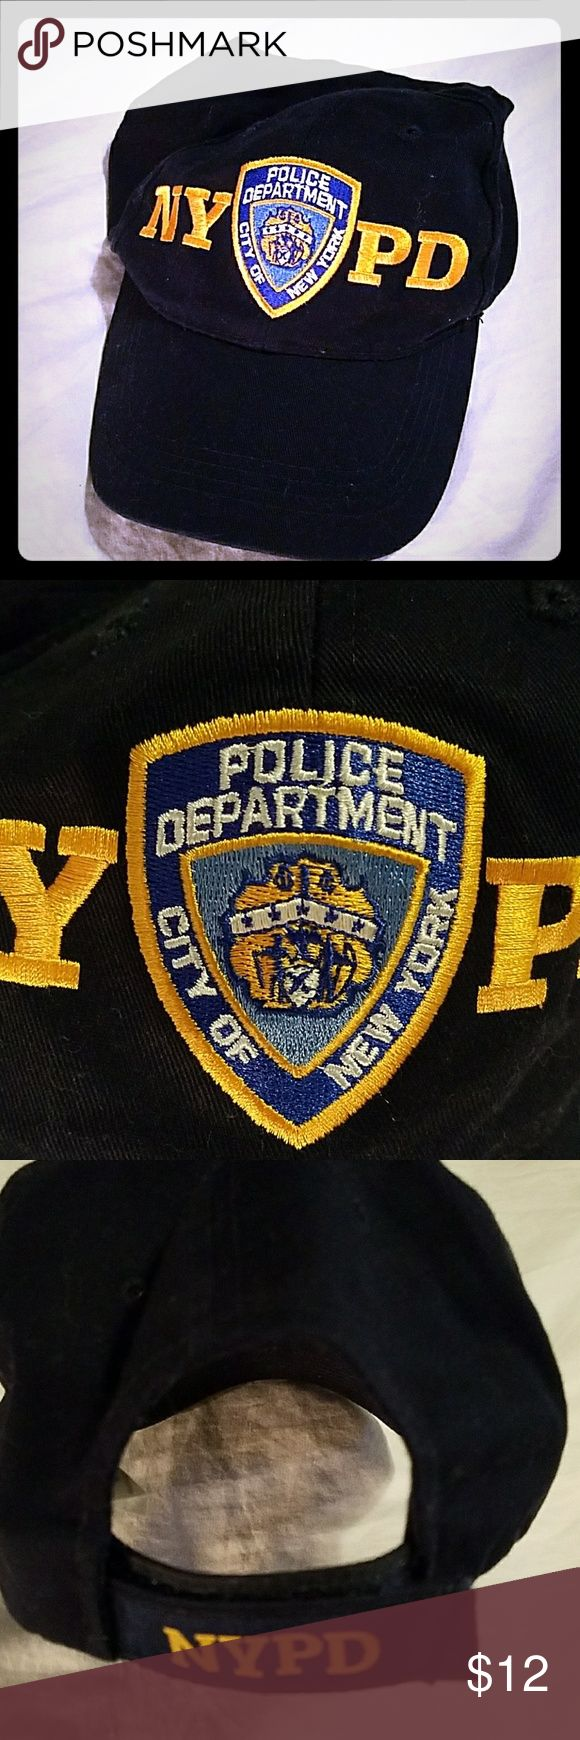 NYPD Police Department city of New York Hat Dark blue NYPD police department city of New York Hat adjustable via Velcro on the back. NYPD in gold on the back strap. Excellent condition. nypd Accessories Hats